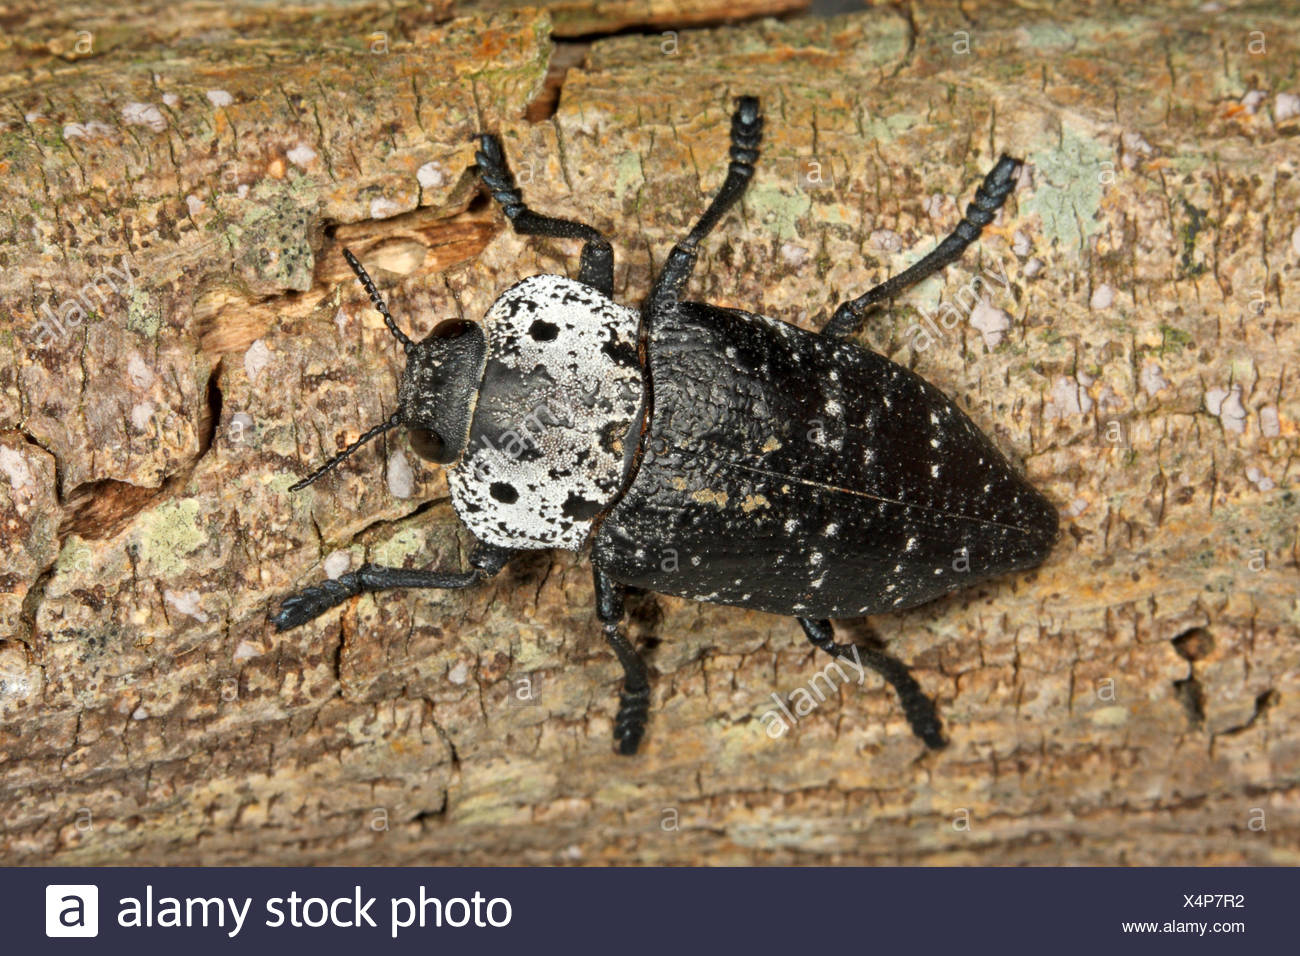 Capnodis  (Capnodis spec.), on deadwood - Stock Image